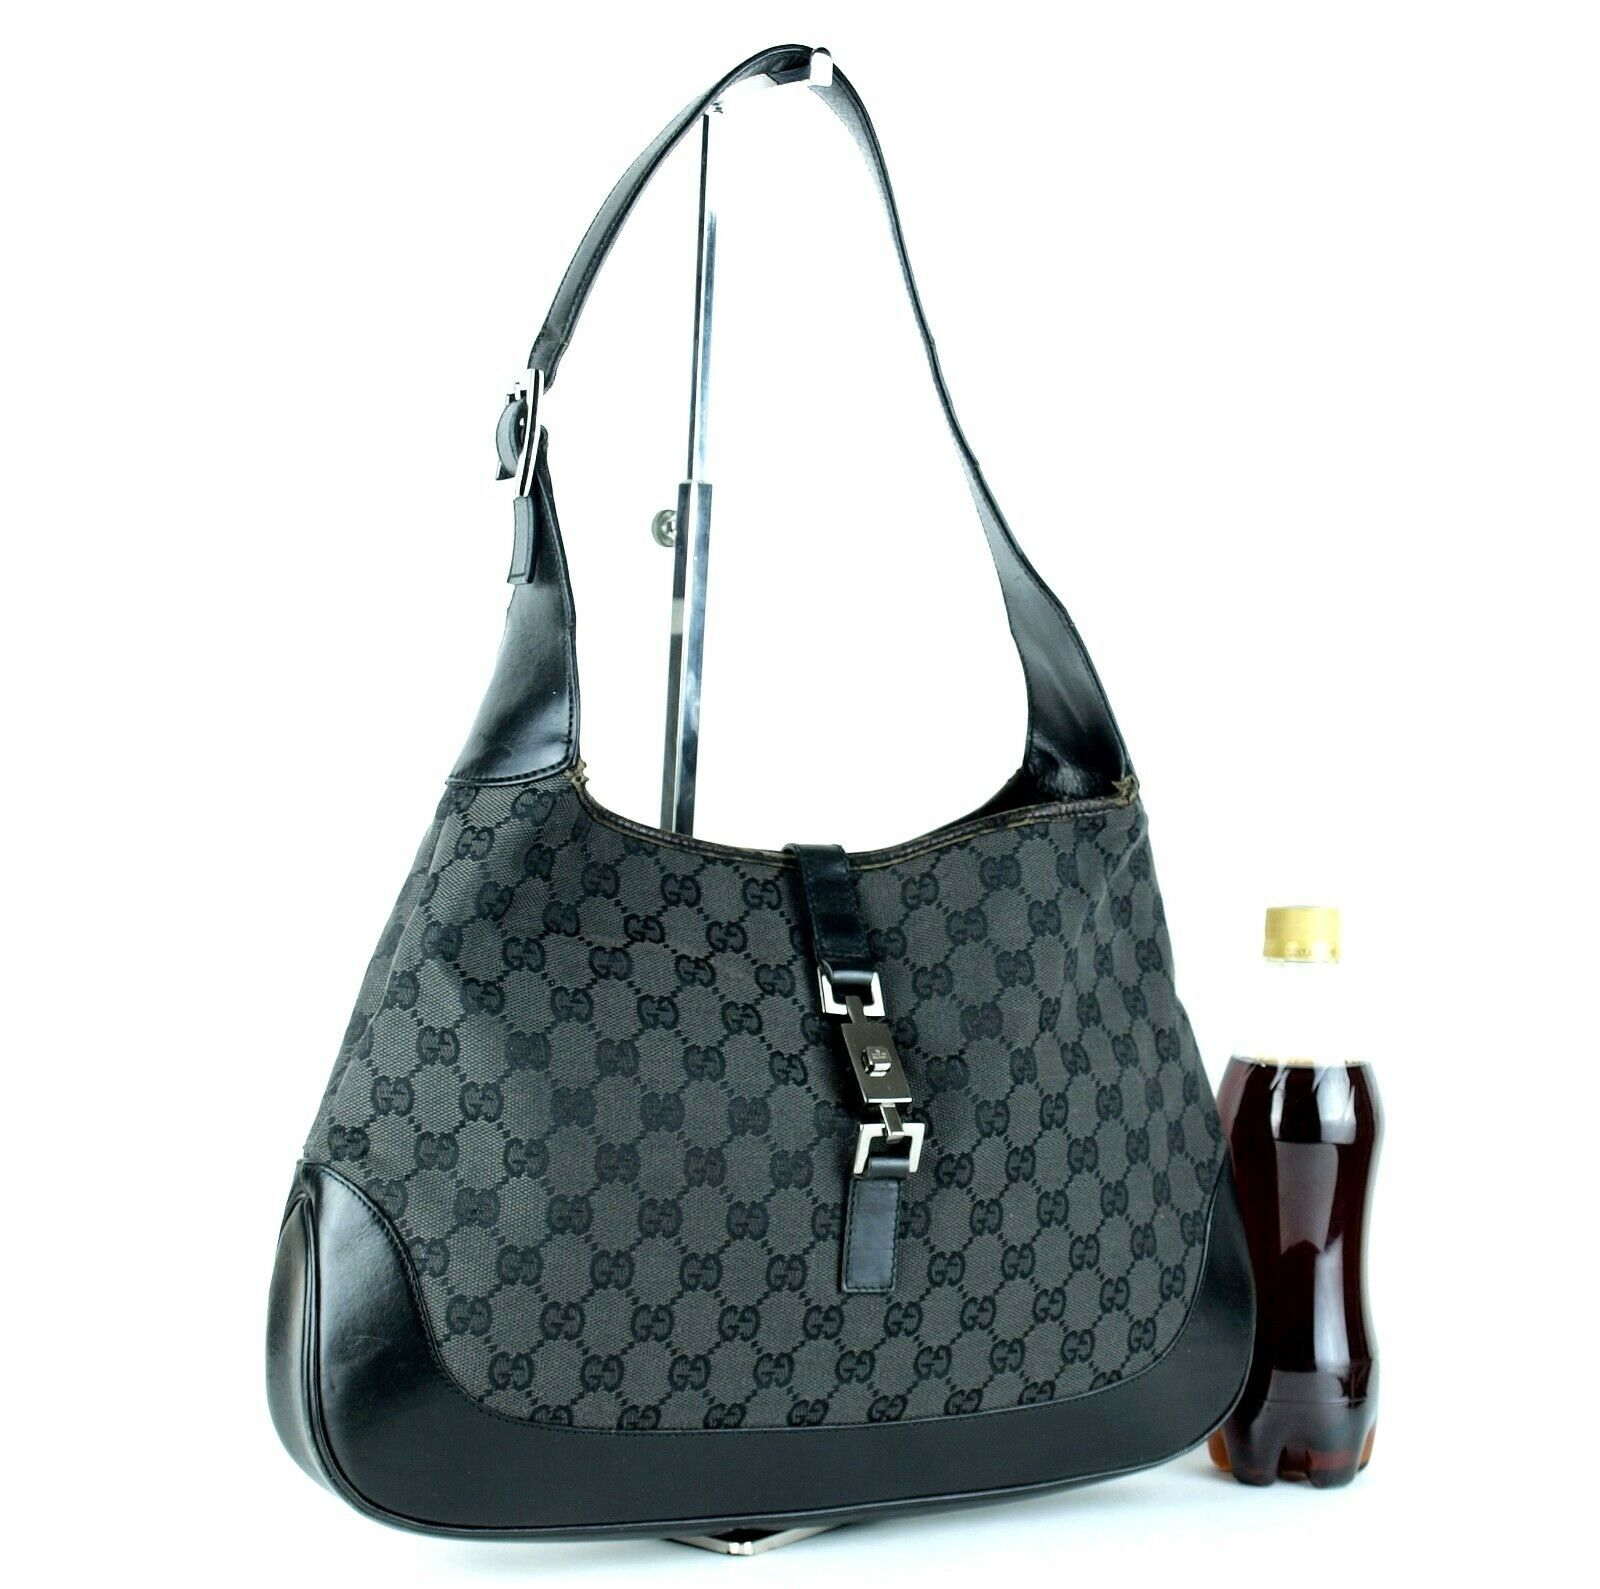 Auth GUCCI GG Black Canvas & Leather Jackie Hobo One Shoulder Bag Purse Italy